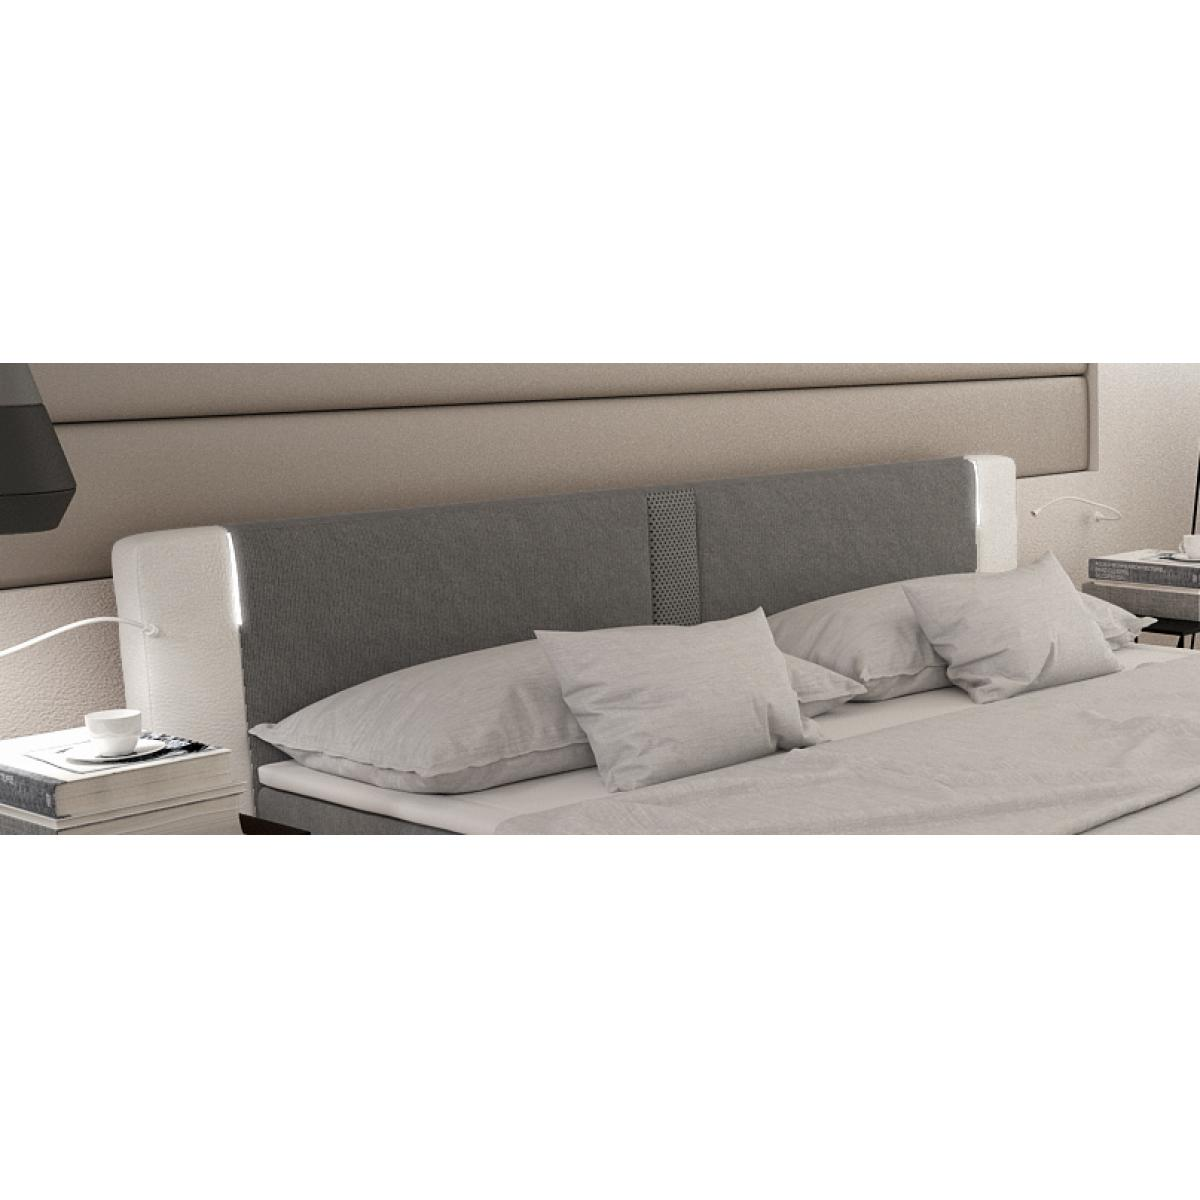 boxspringbett 180x200 doppelbett hotelbett polsterbett ehebett bett wei ebay. Black Bedroom Furniture Sets. Home Design Ideas